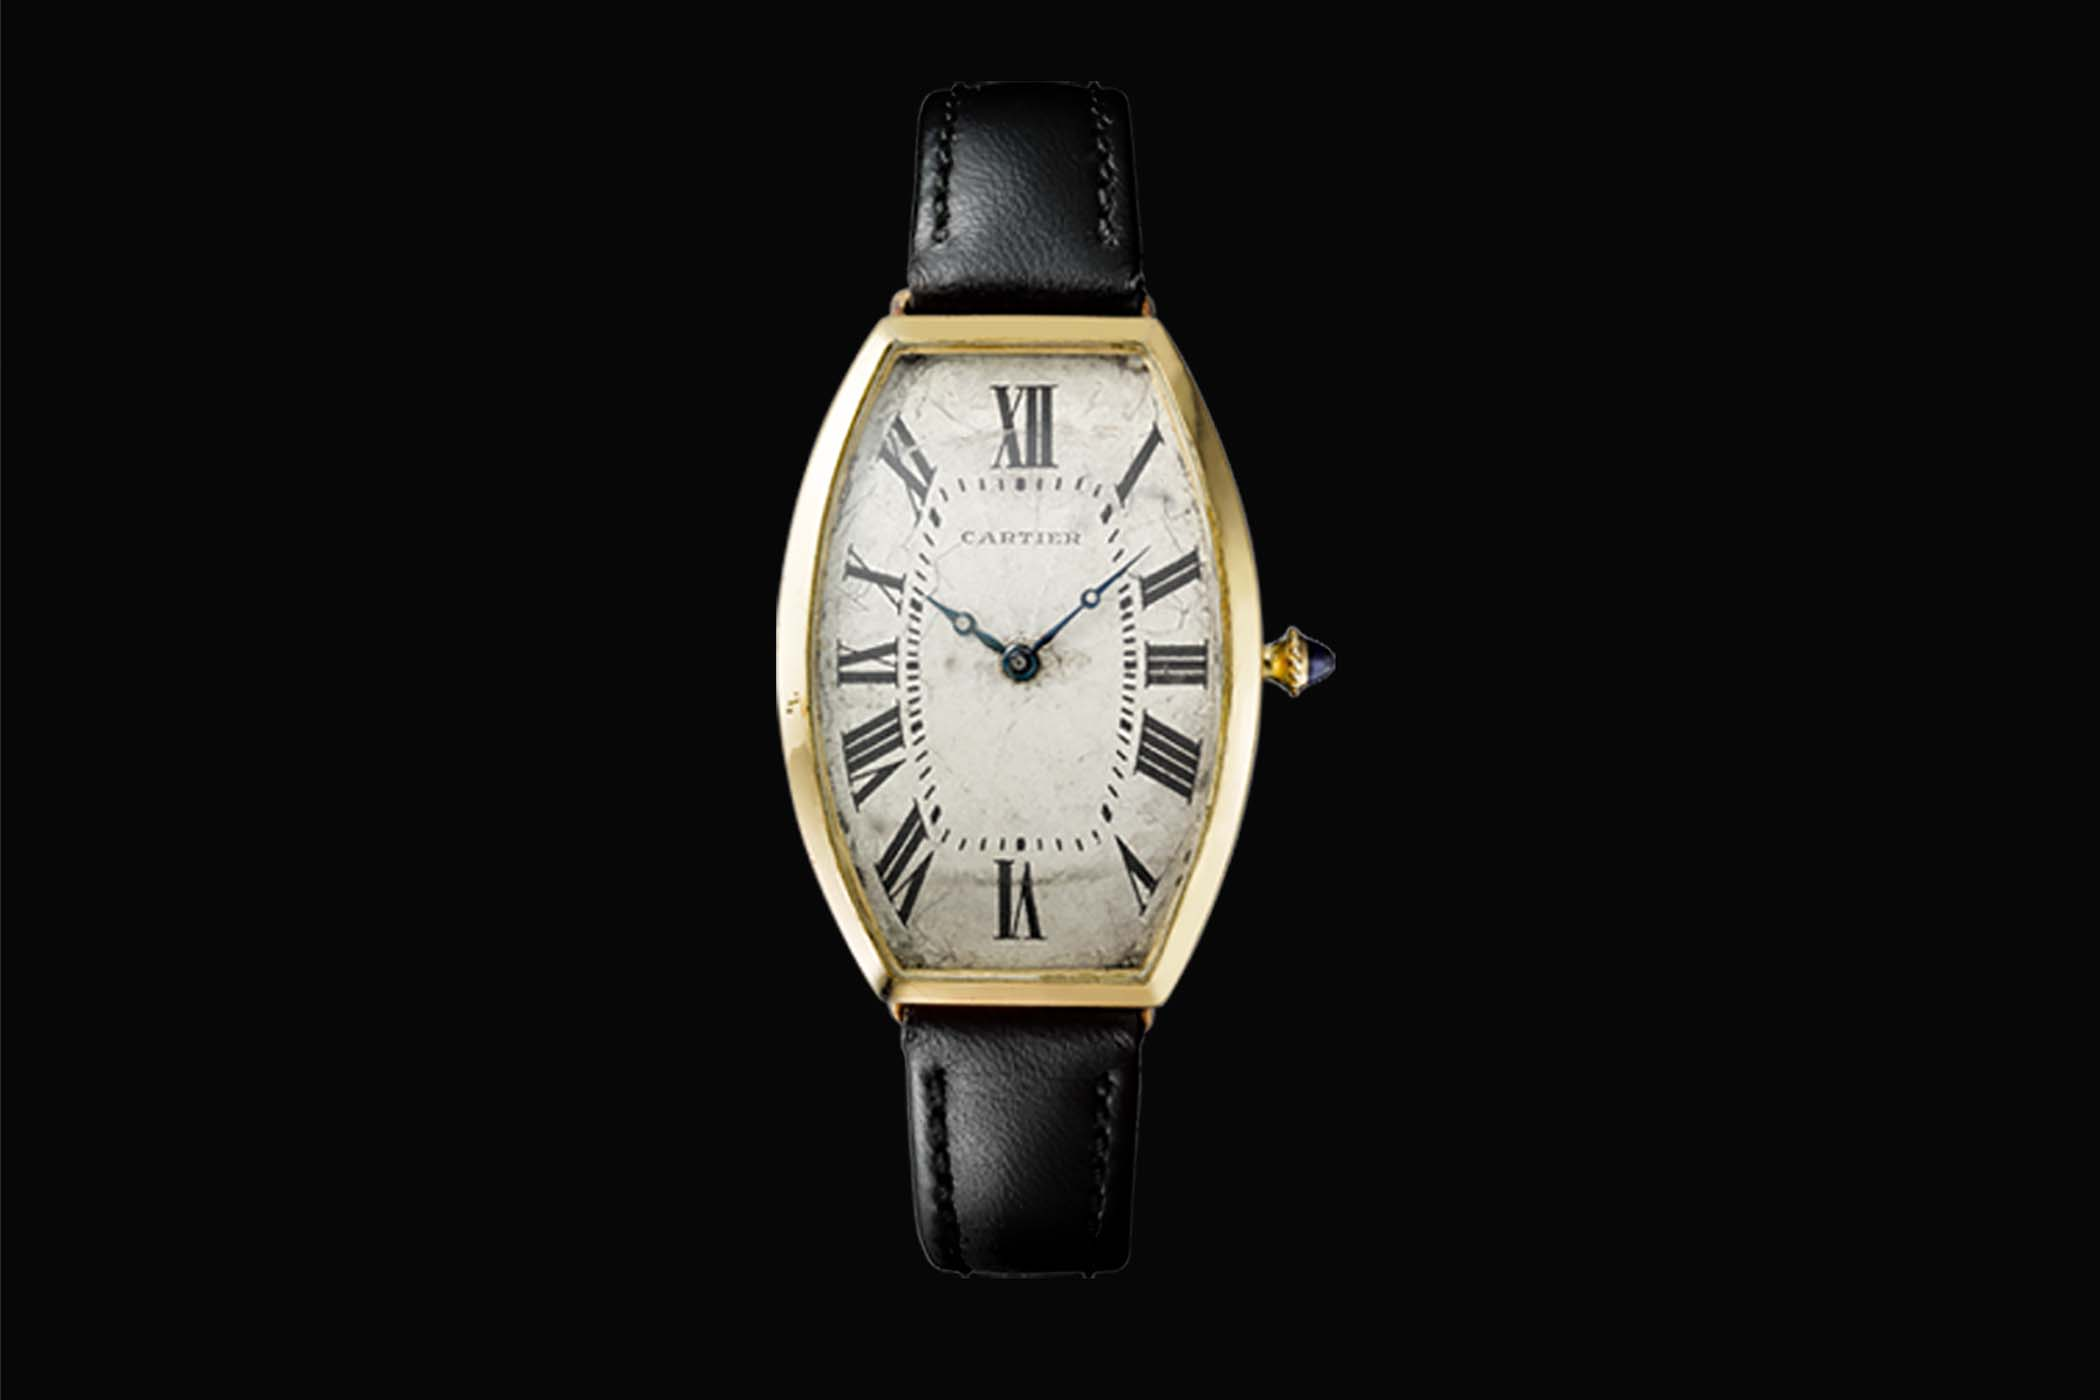 Pre-SIHH 2019 - Cartier Prive Collection, The Comaback of the Cartier Tonneau